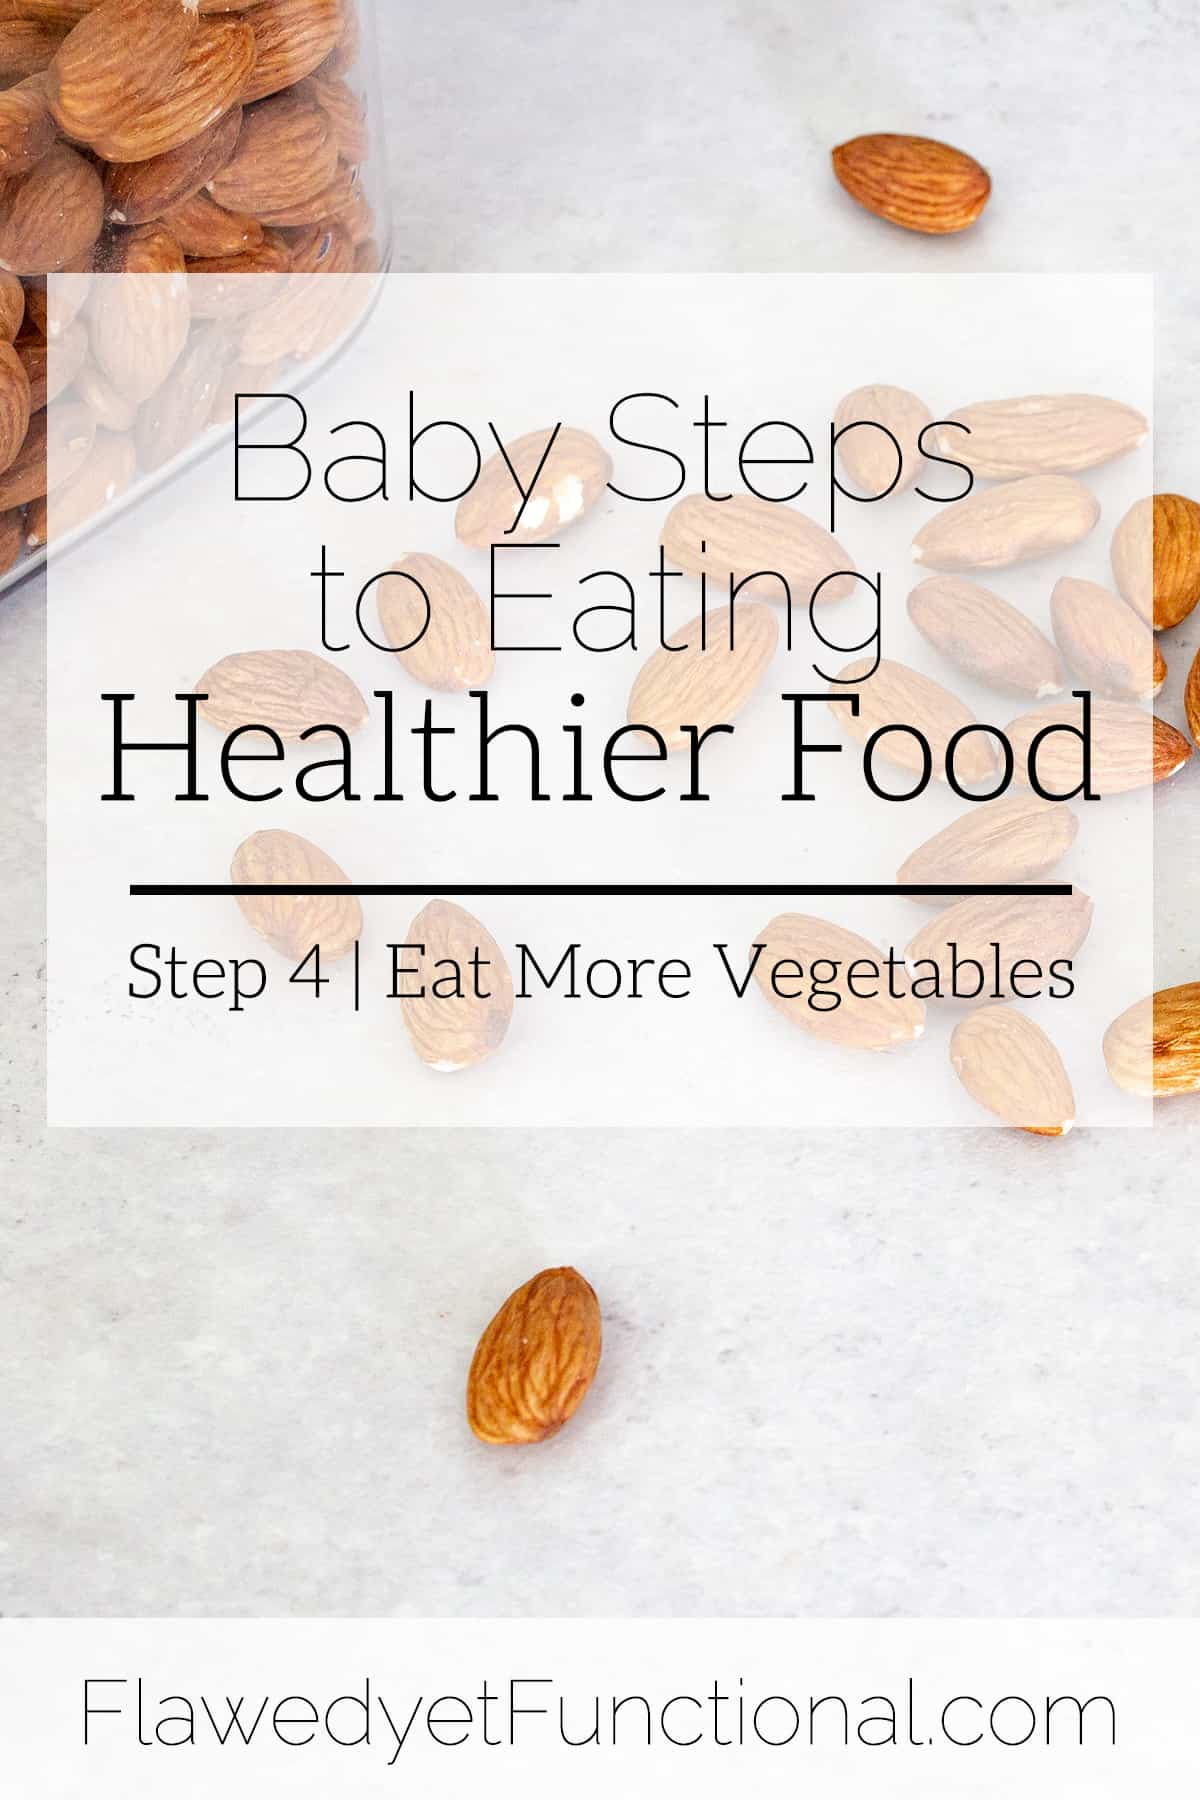 Baby Steps to Eating Healthier Food | Eat More Vegetables